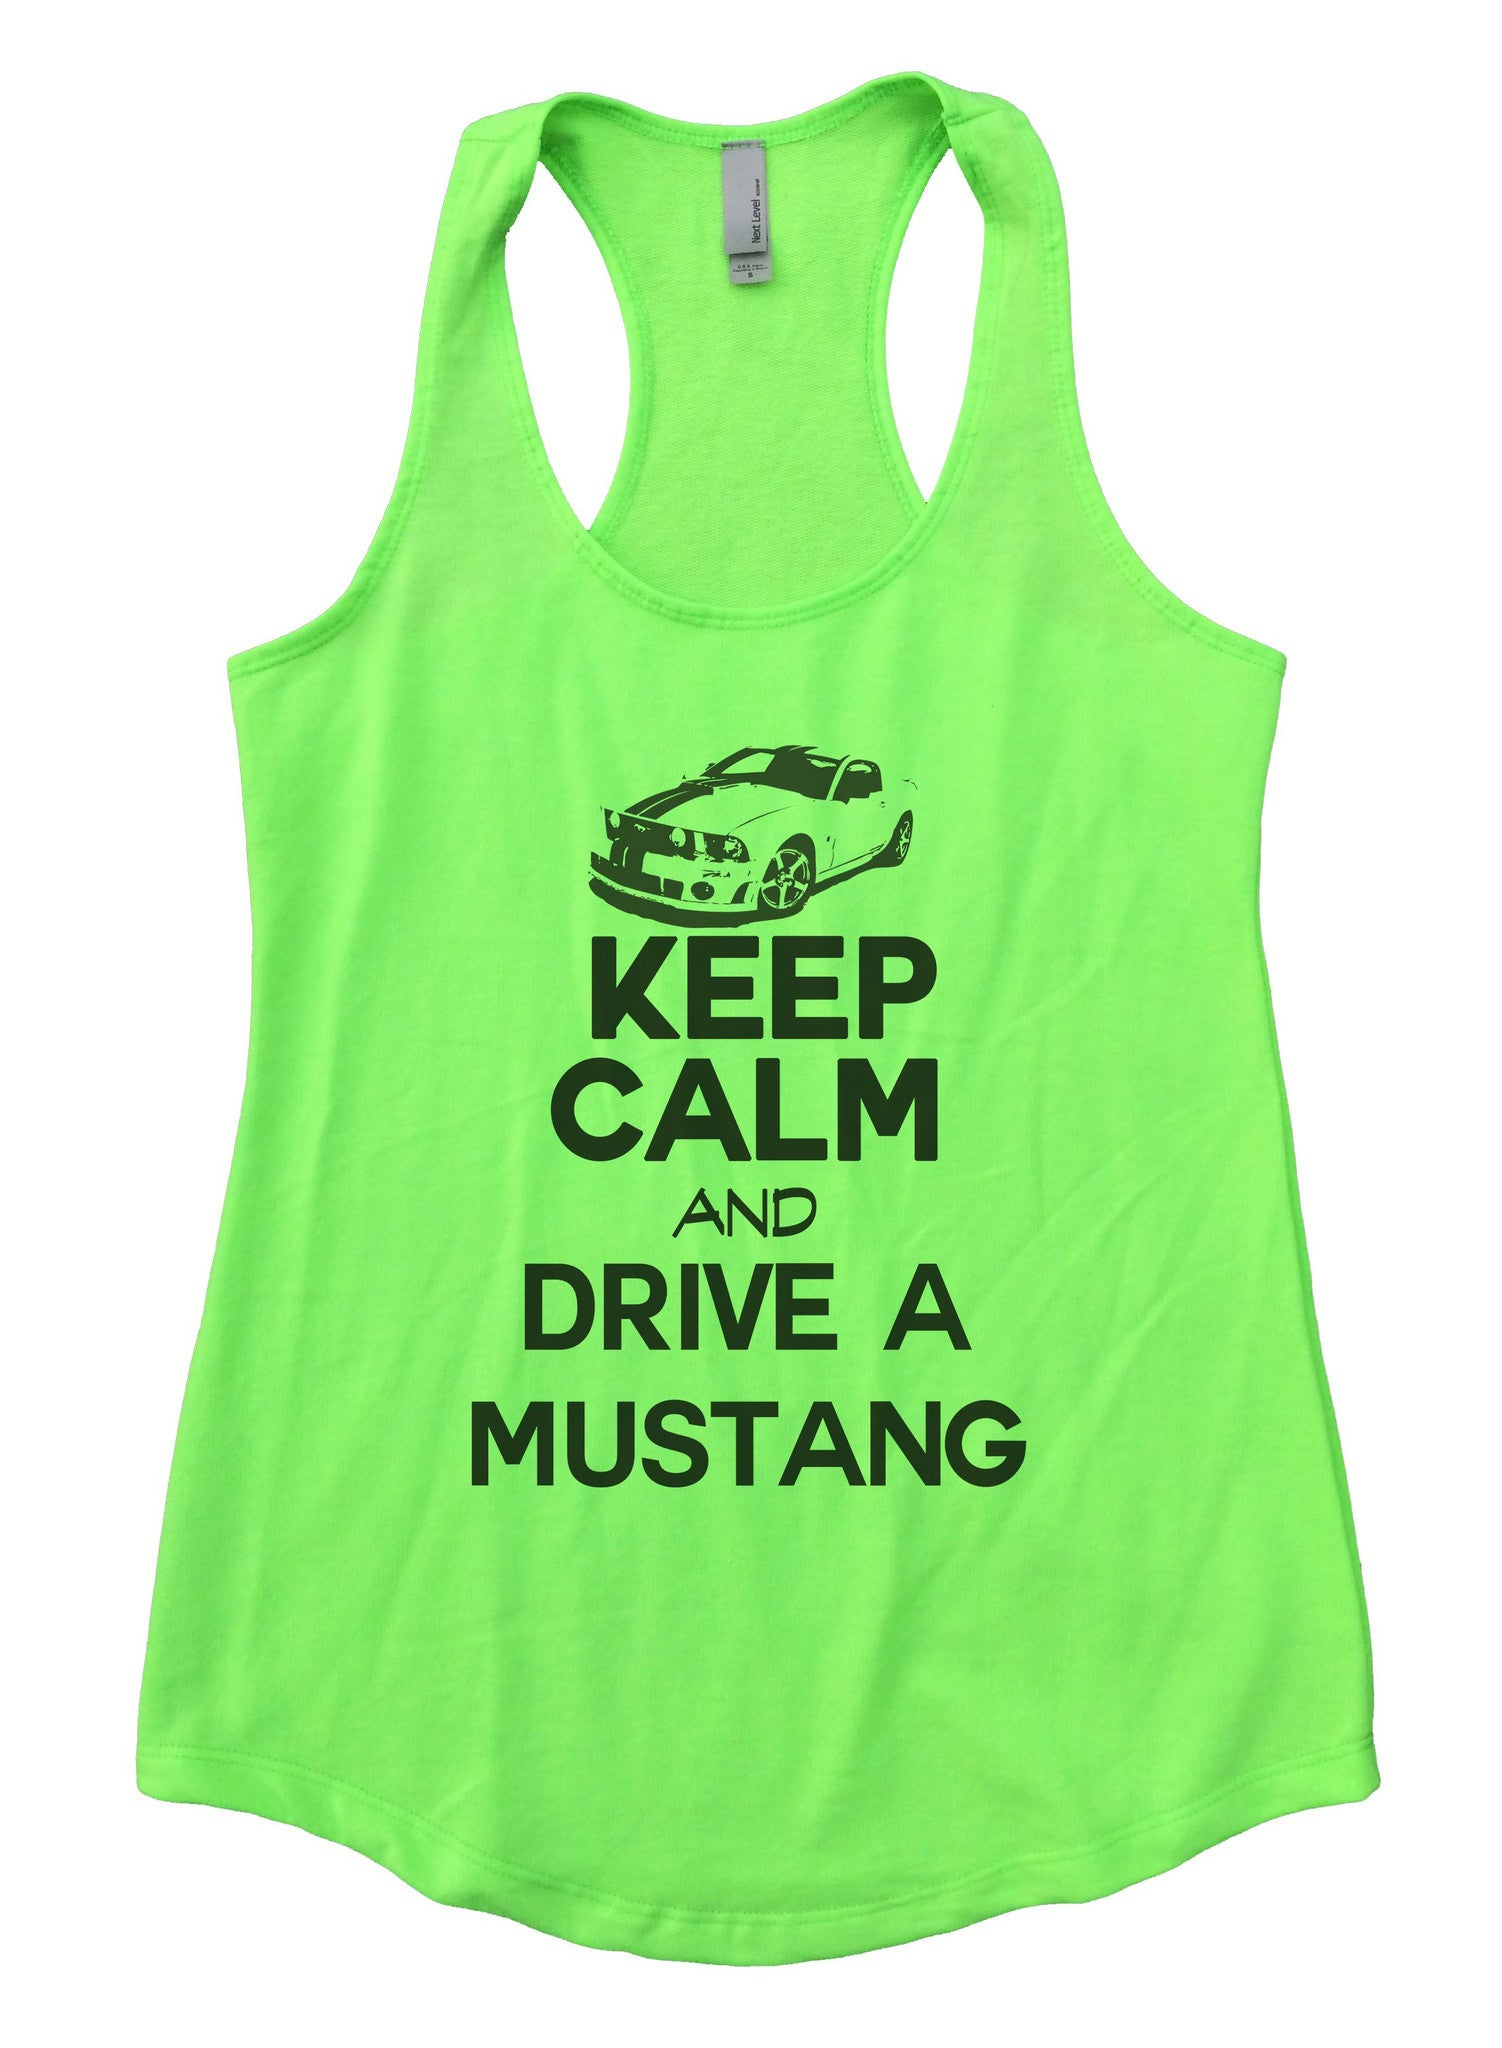 Keep Calm And Drive A Mustang Womens Workout Tank Top 2119 - Funny Shirts Tank Tops Burnouts and Triblends  - 1